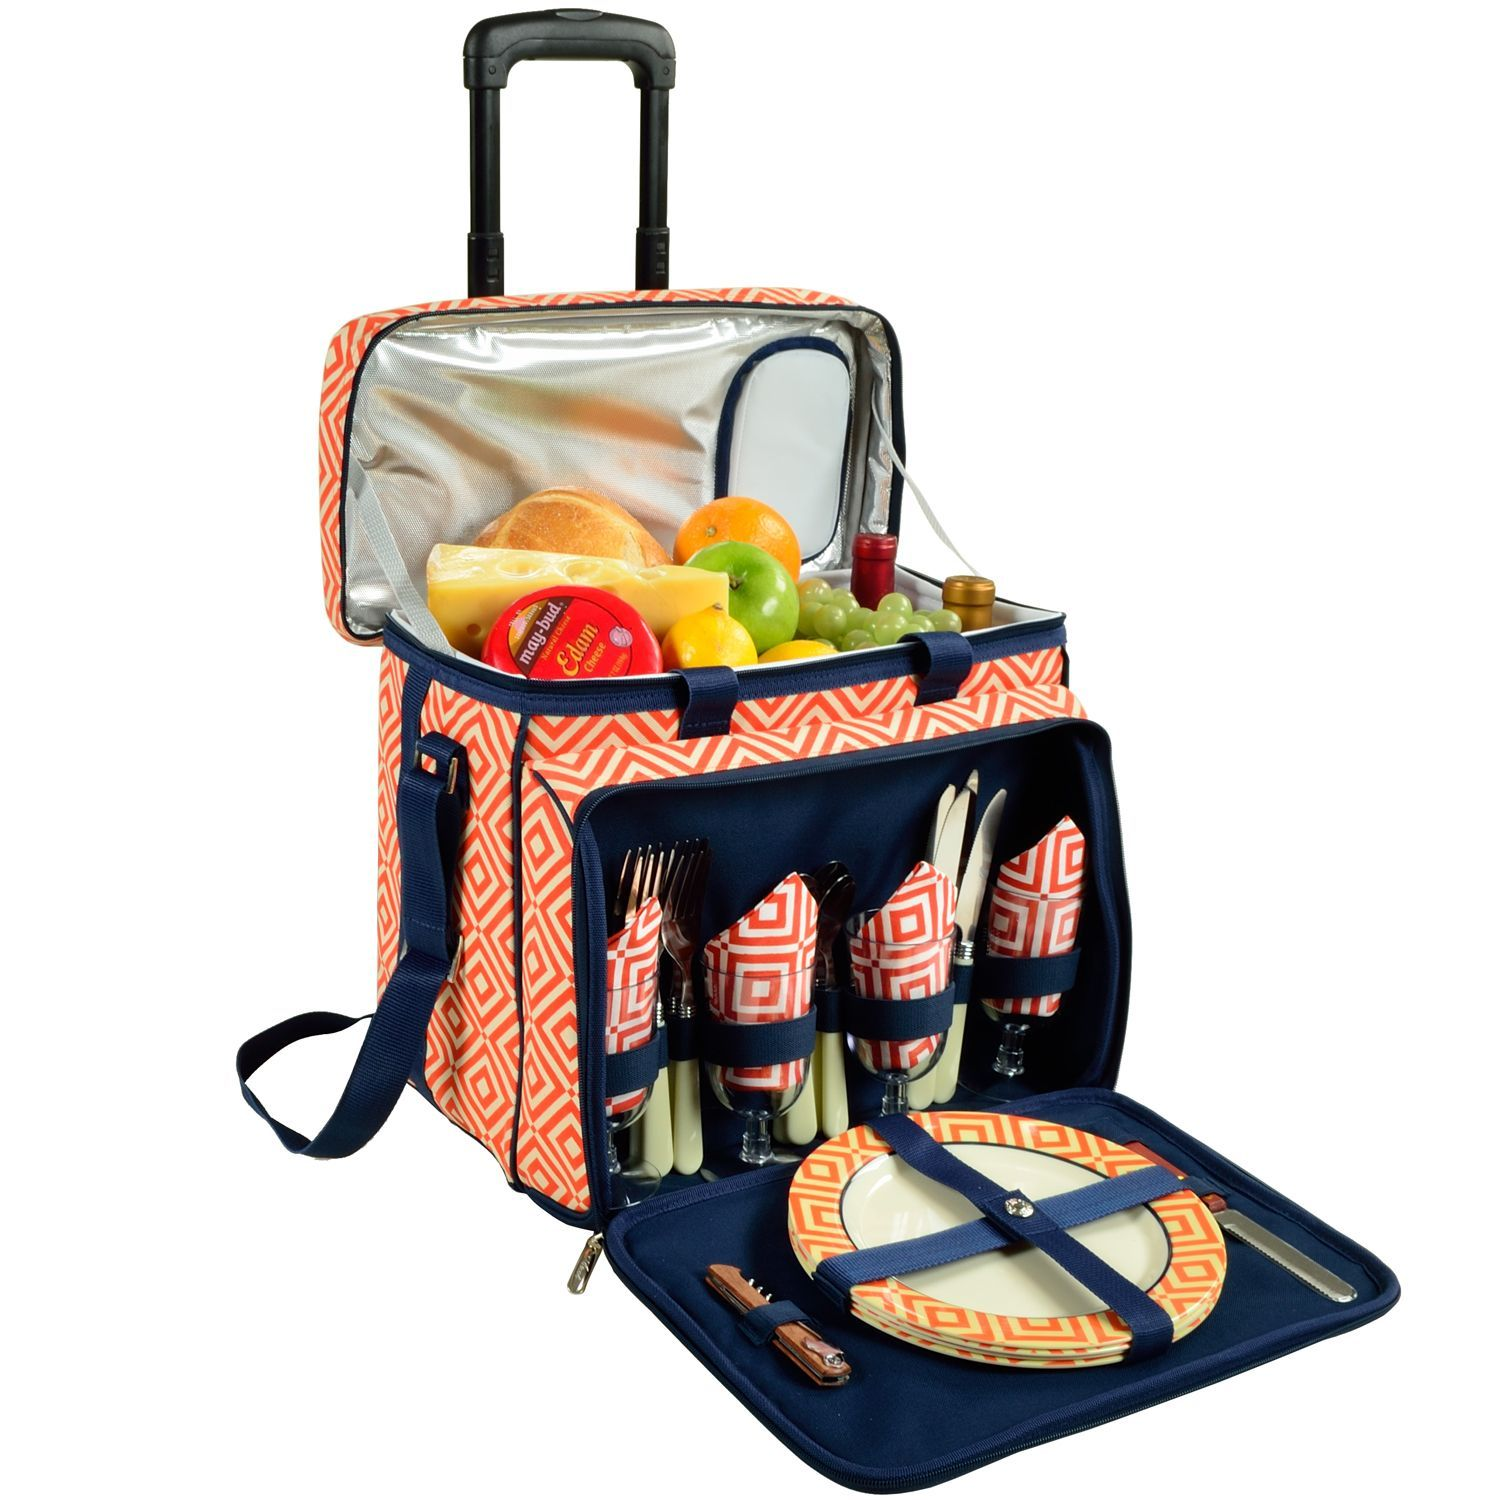 Picnic at Ascot Diamond Collection Wheeled Picnic Cooler for Four - Overstock Shopping - The Best Prices on Picnic at Ascot Coolers